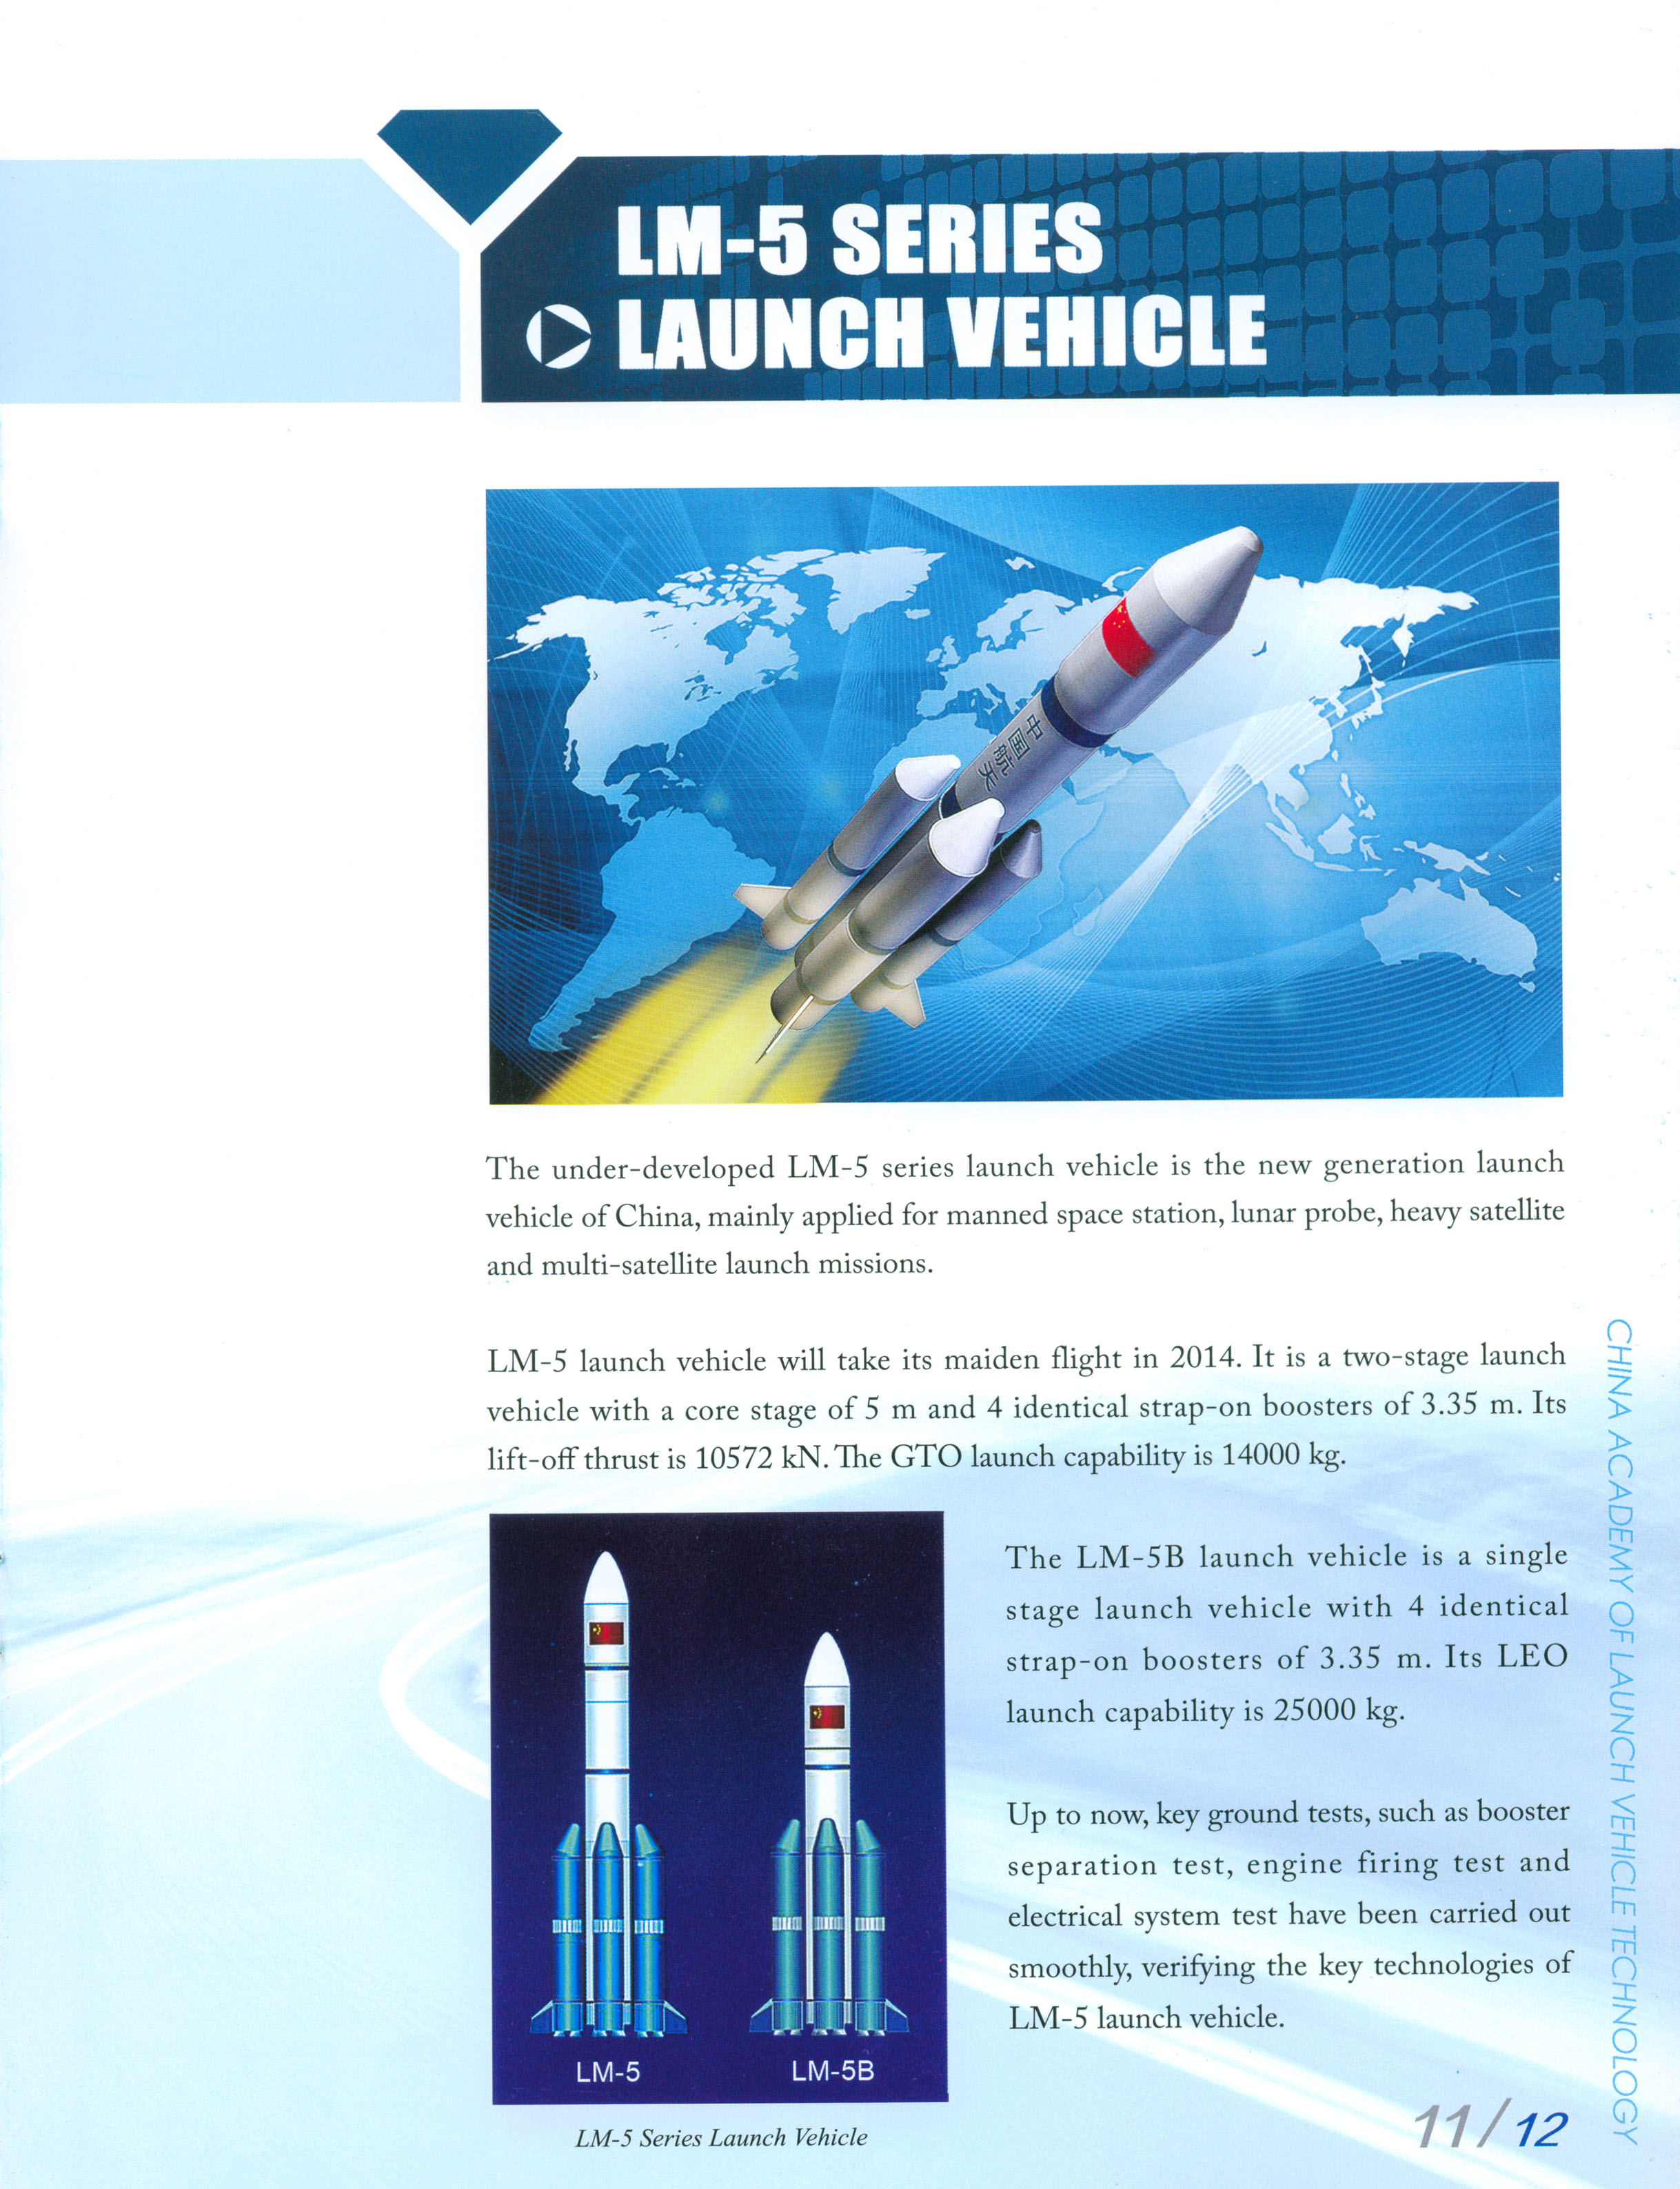 LM-5 SERIES LAUNCH VEHICLE